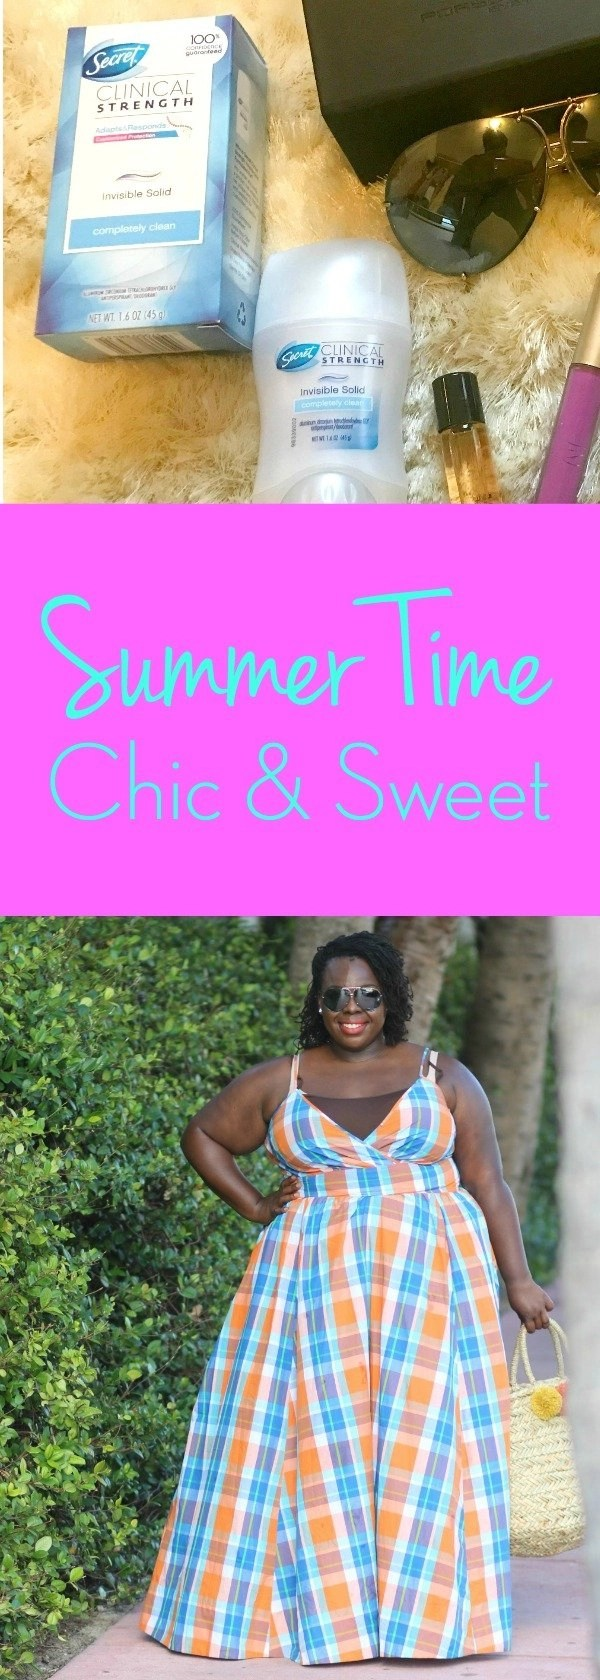 Summer Time Chic & Sweet with Secret Clinical Strength